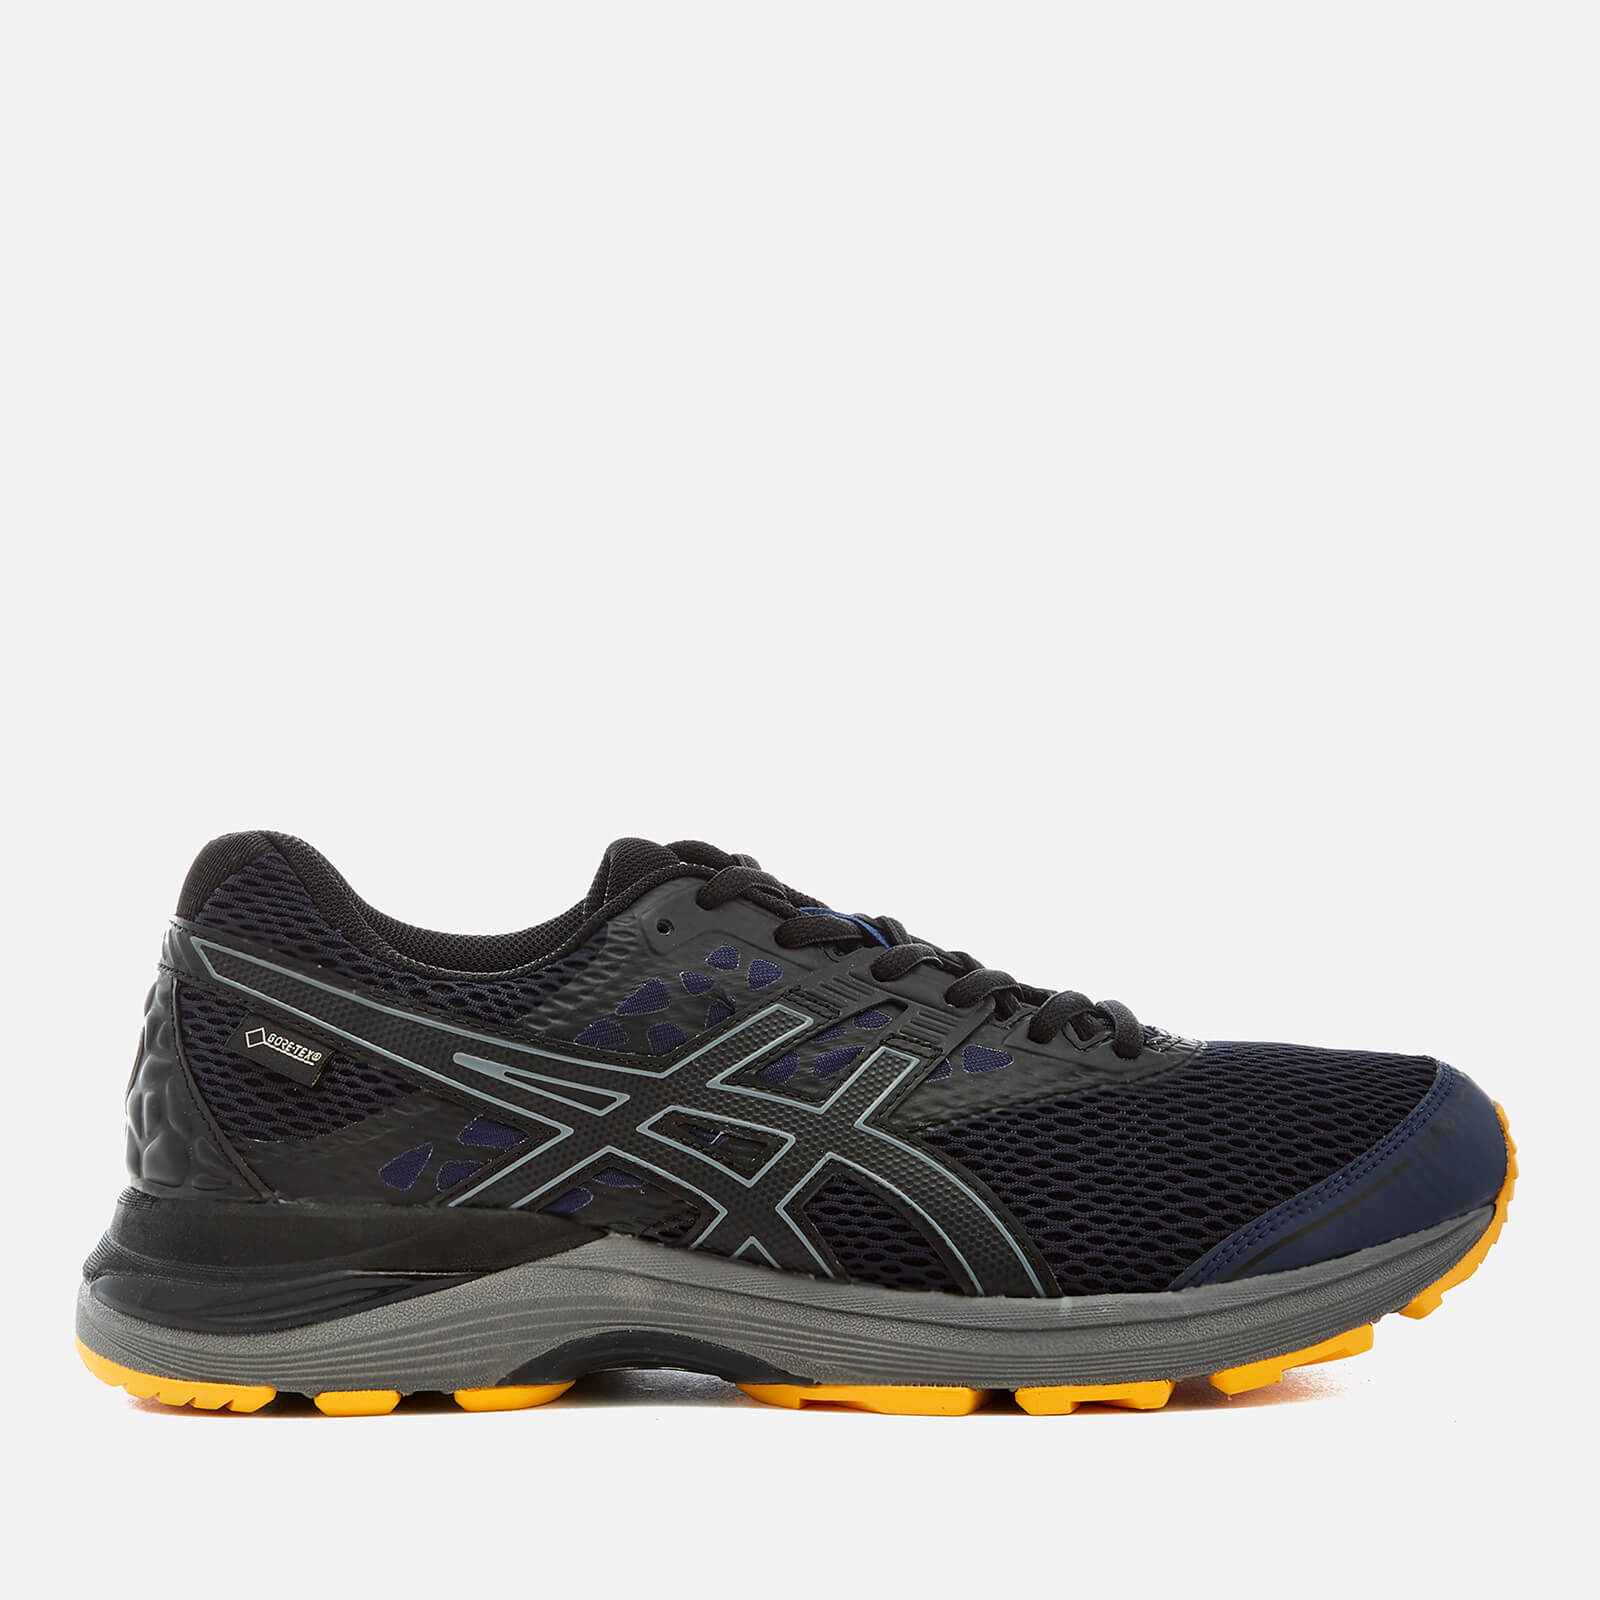 Asics Men's Running Gel Pulse 9 GTX - Winter Running Trainers -  Peacoat/Black/Gold Fusion